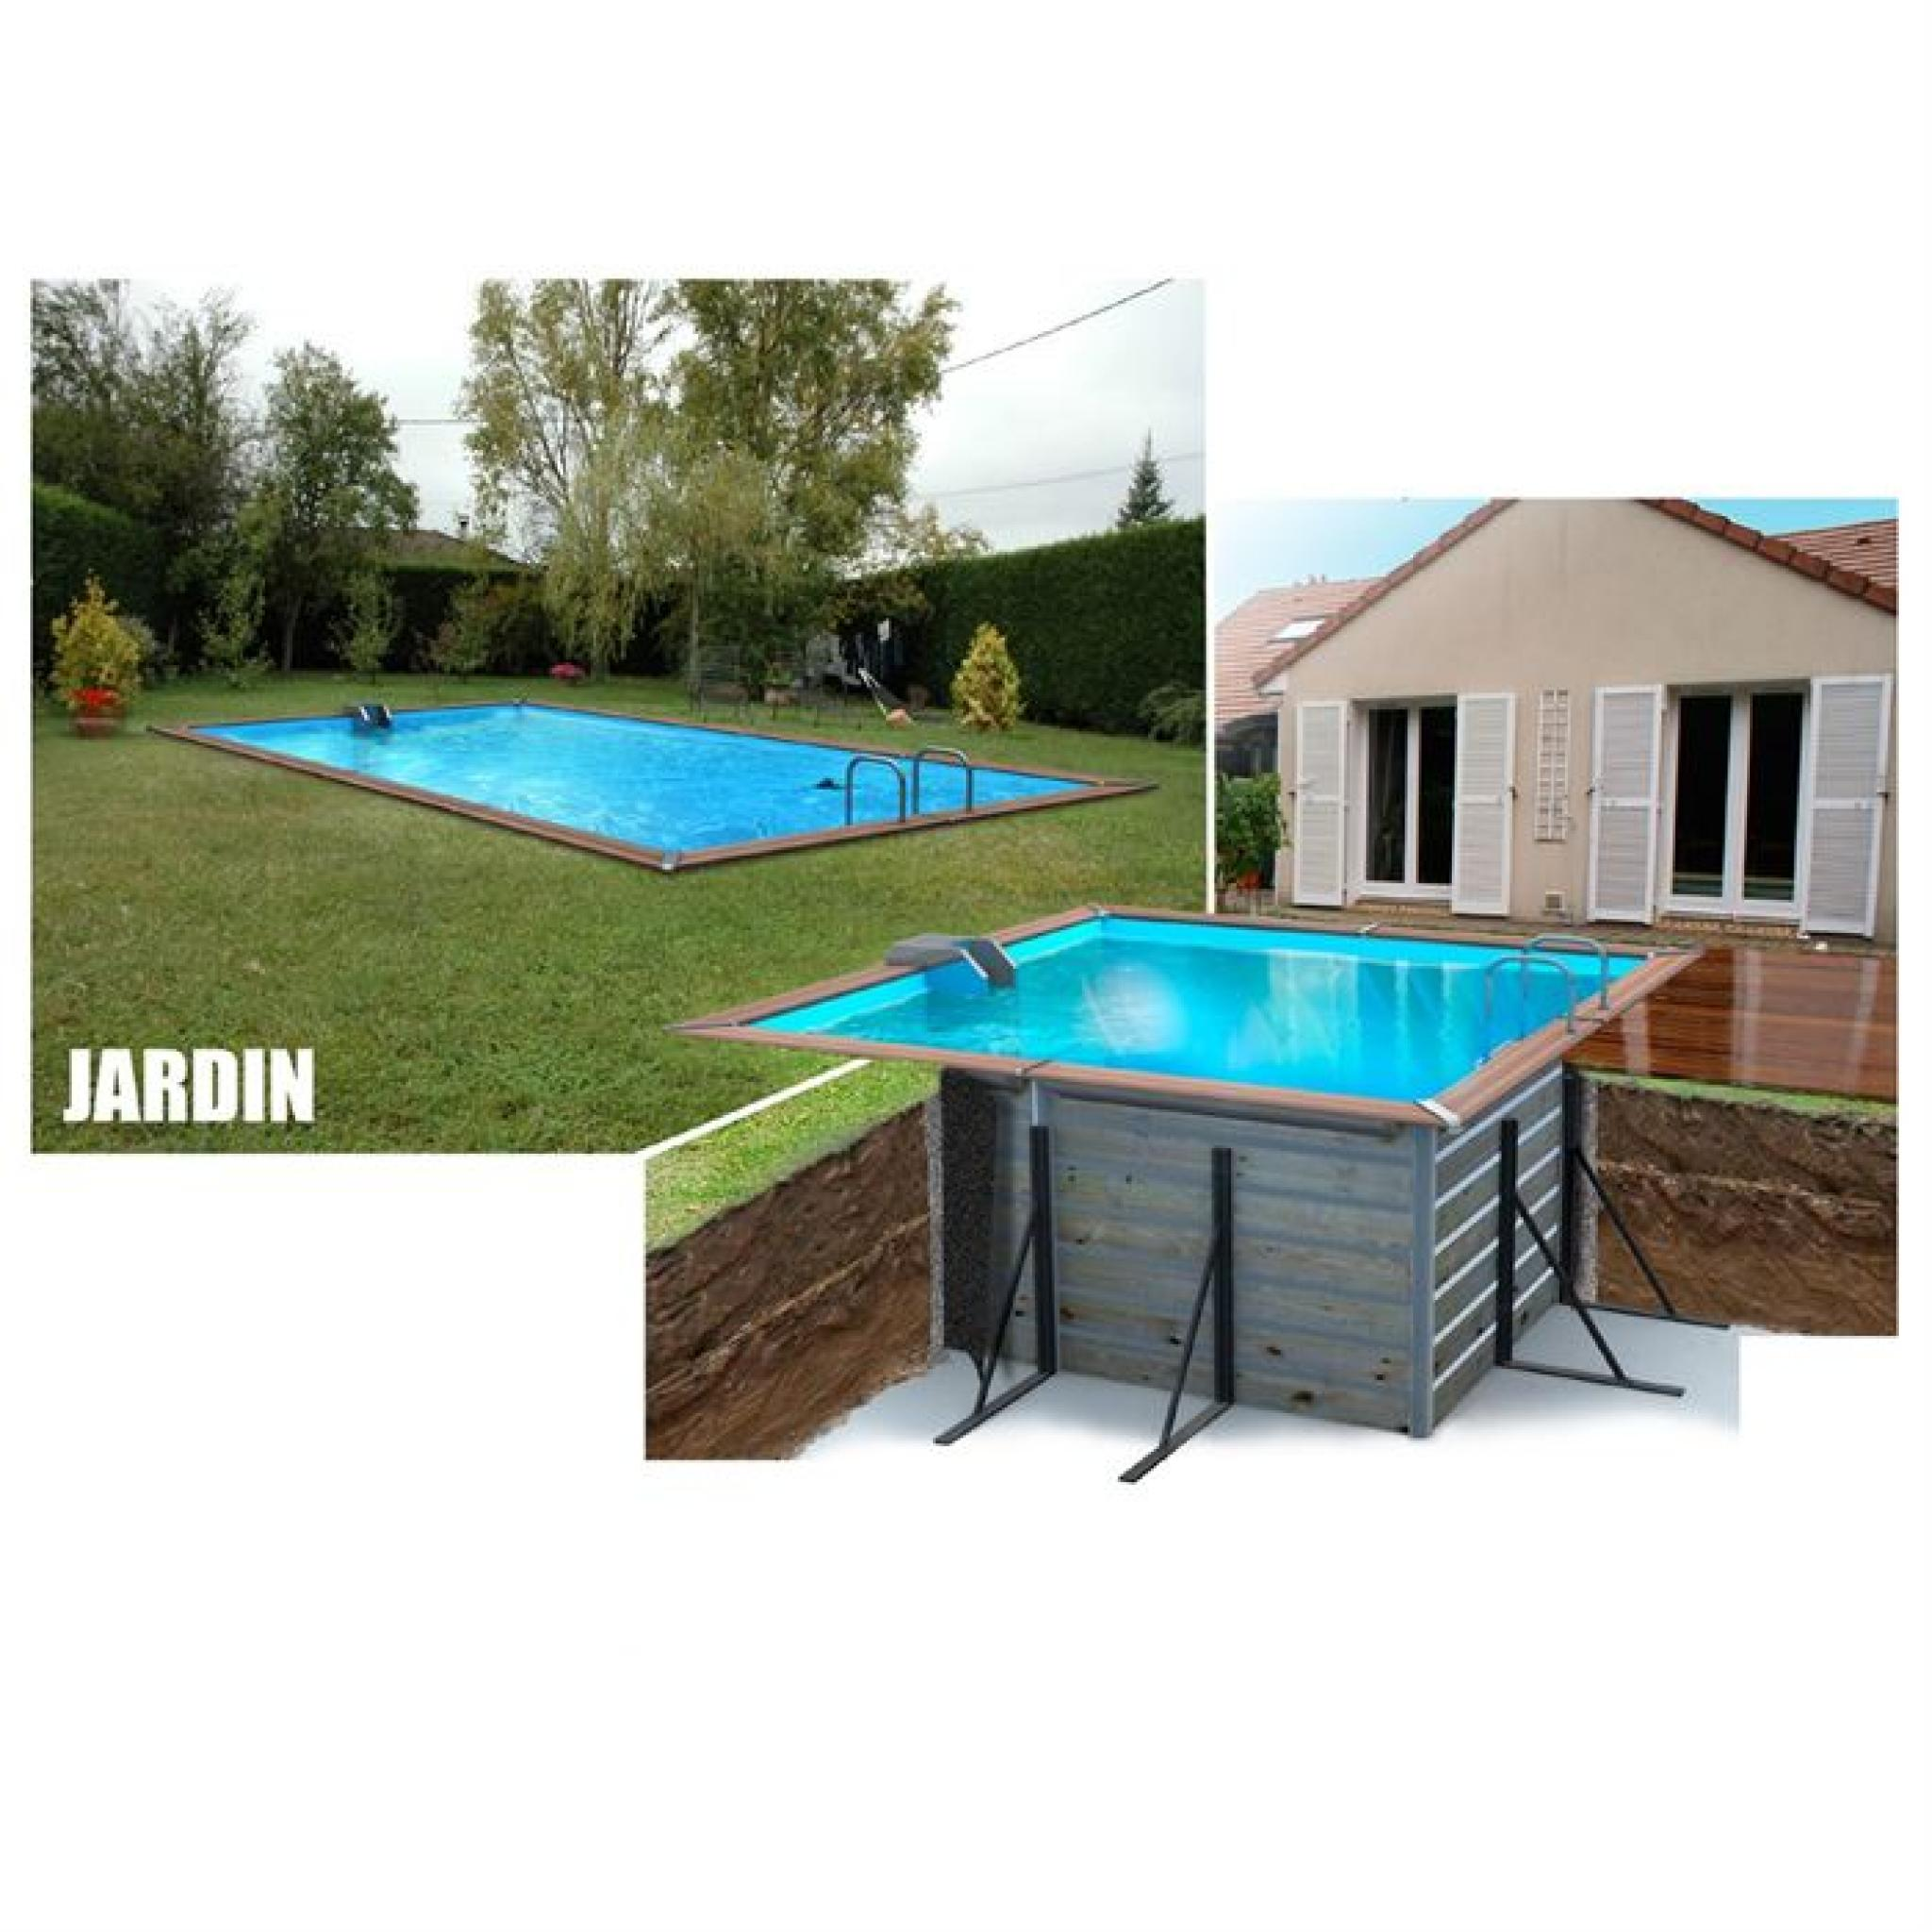 waterclip piscine bois alu 460x460x147 optimum achat. Black Bedroom Furniture Sets. Home Design Ideas